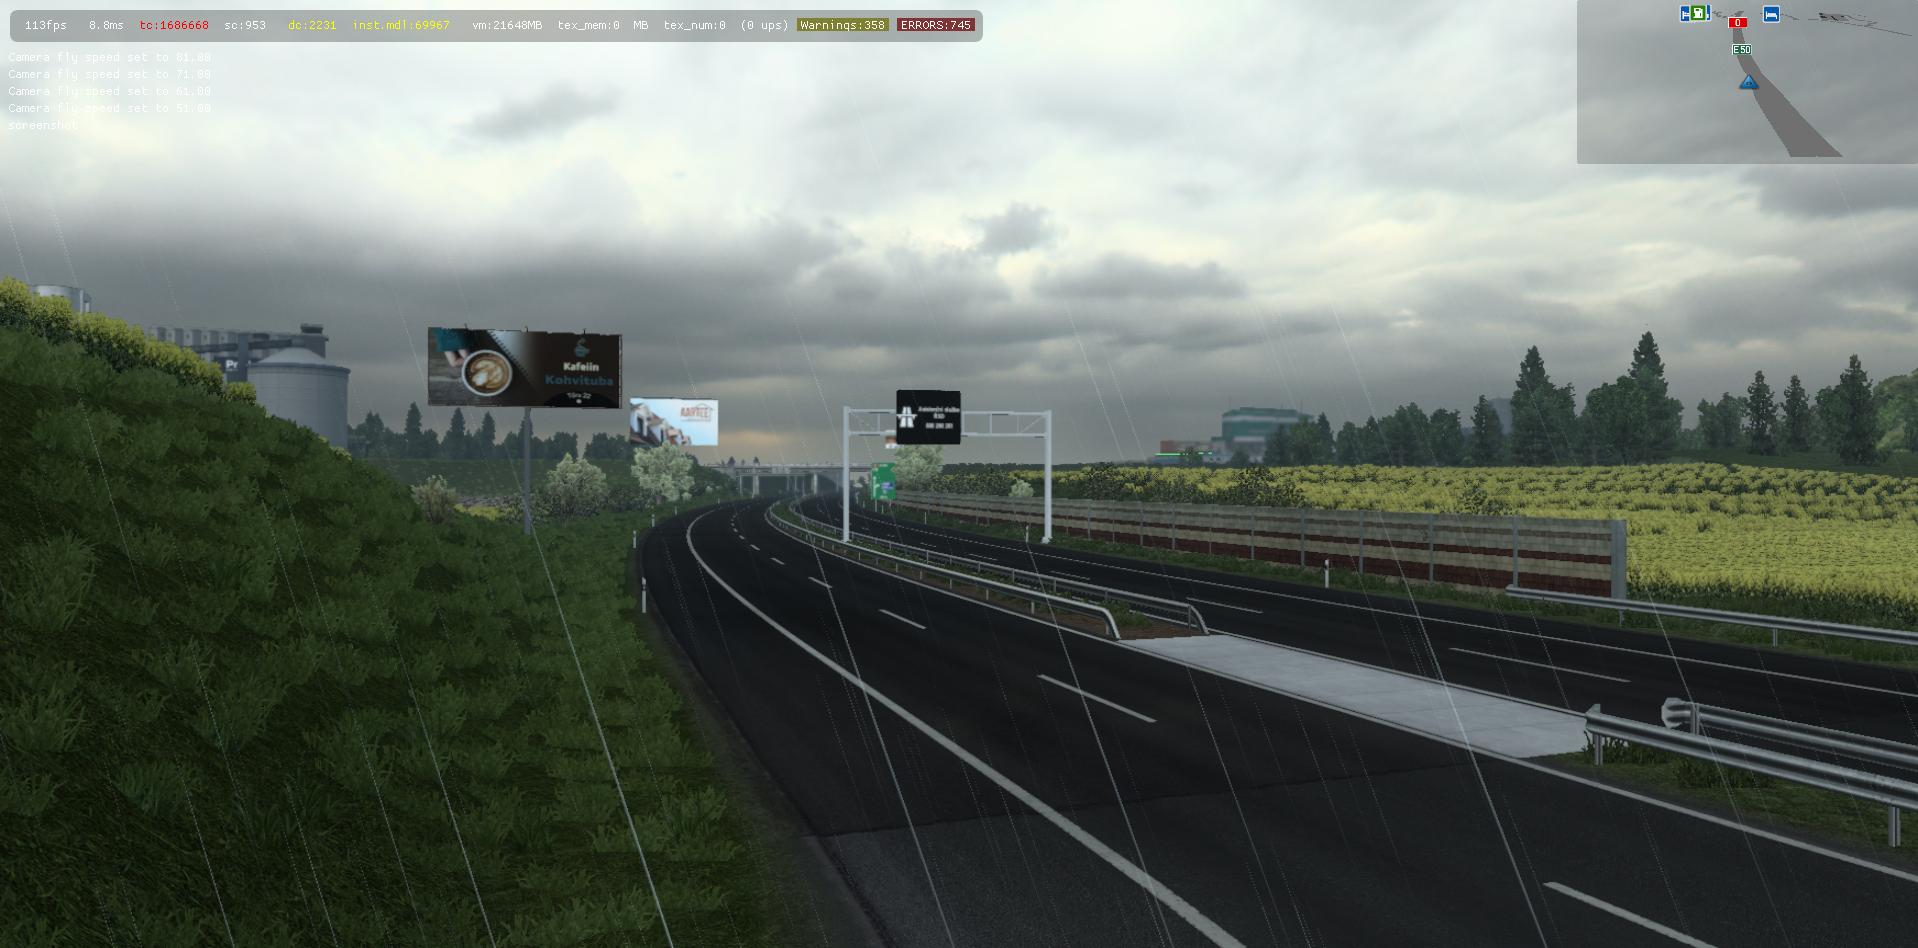 ets2_20210621_210934_00.png